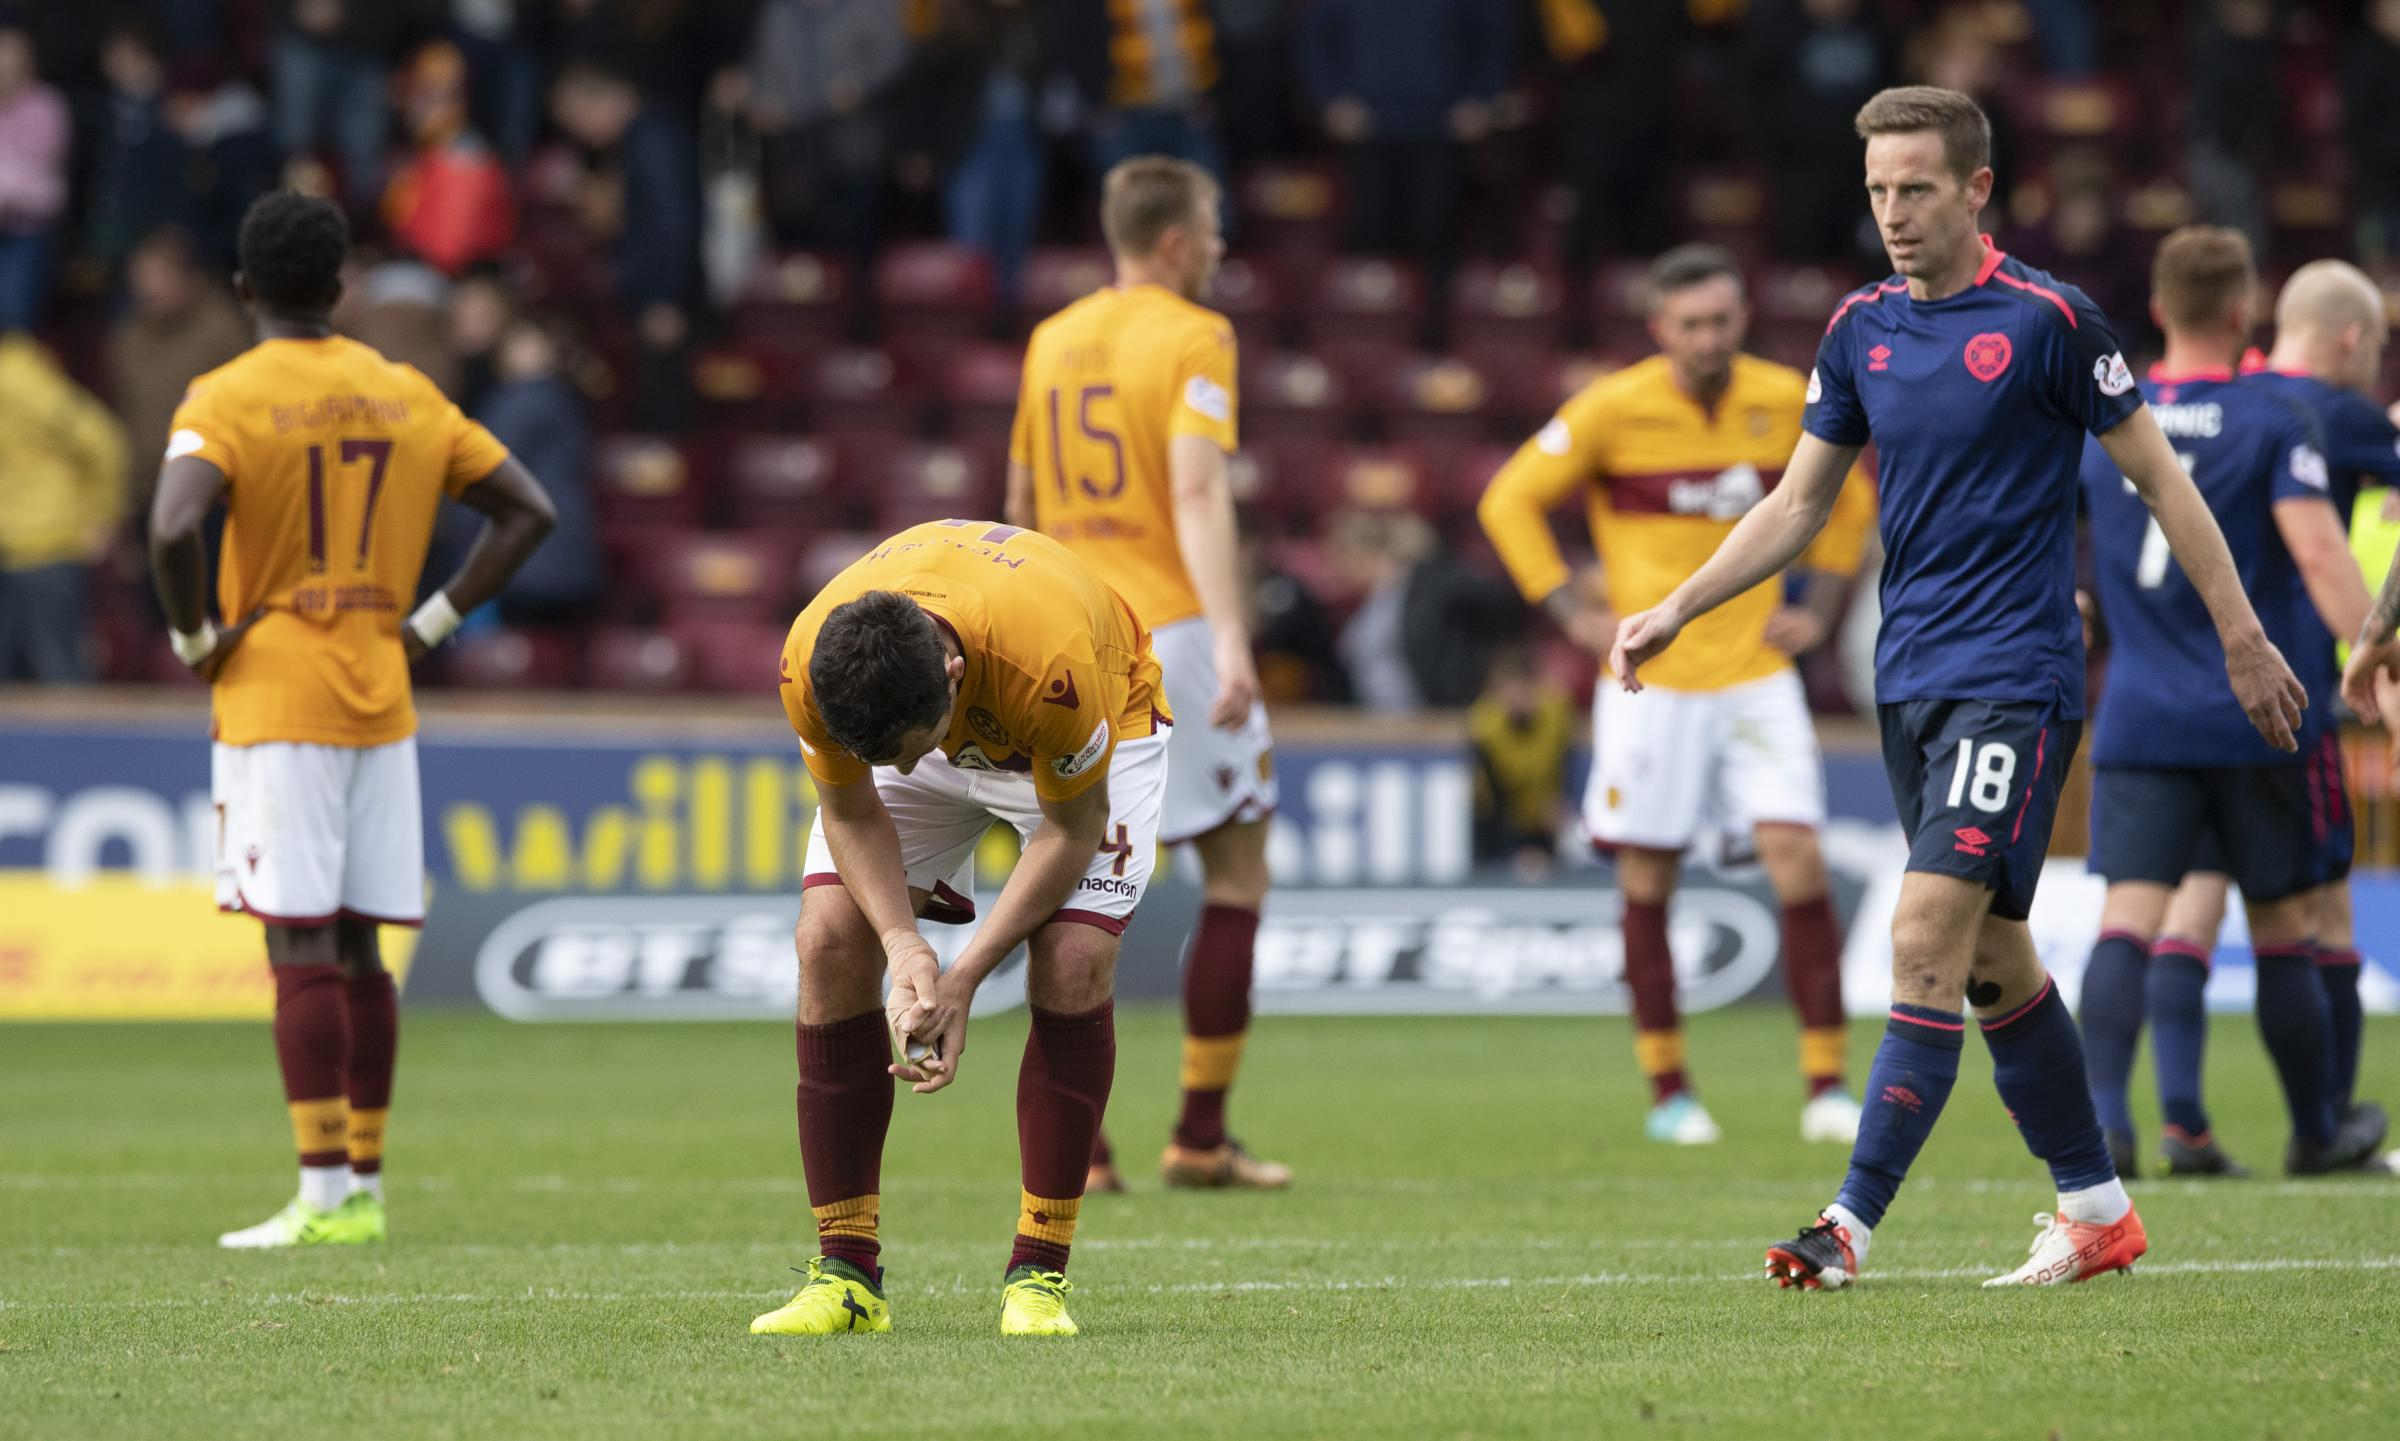 Carl McHugh is devastated at full-time after his mistake proved costly for Motherwell against Hearts.